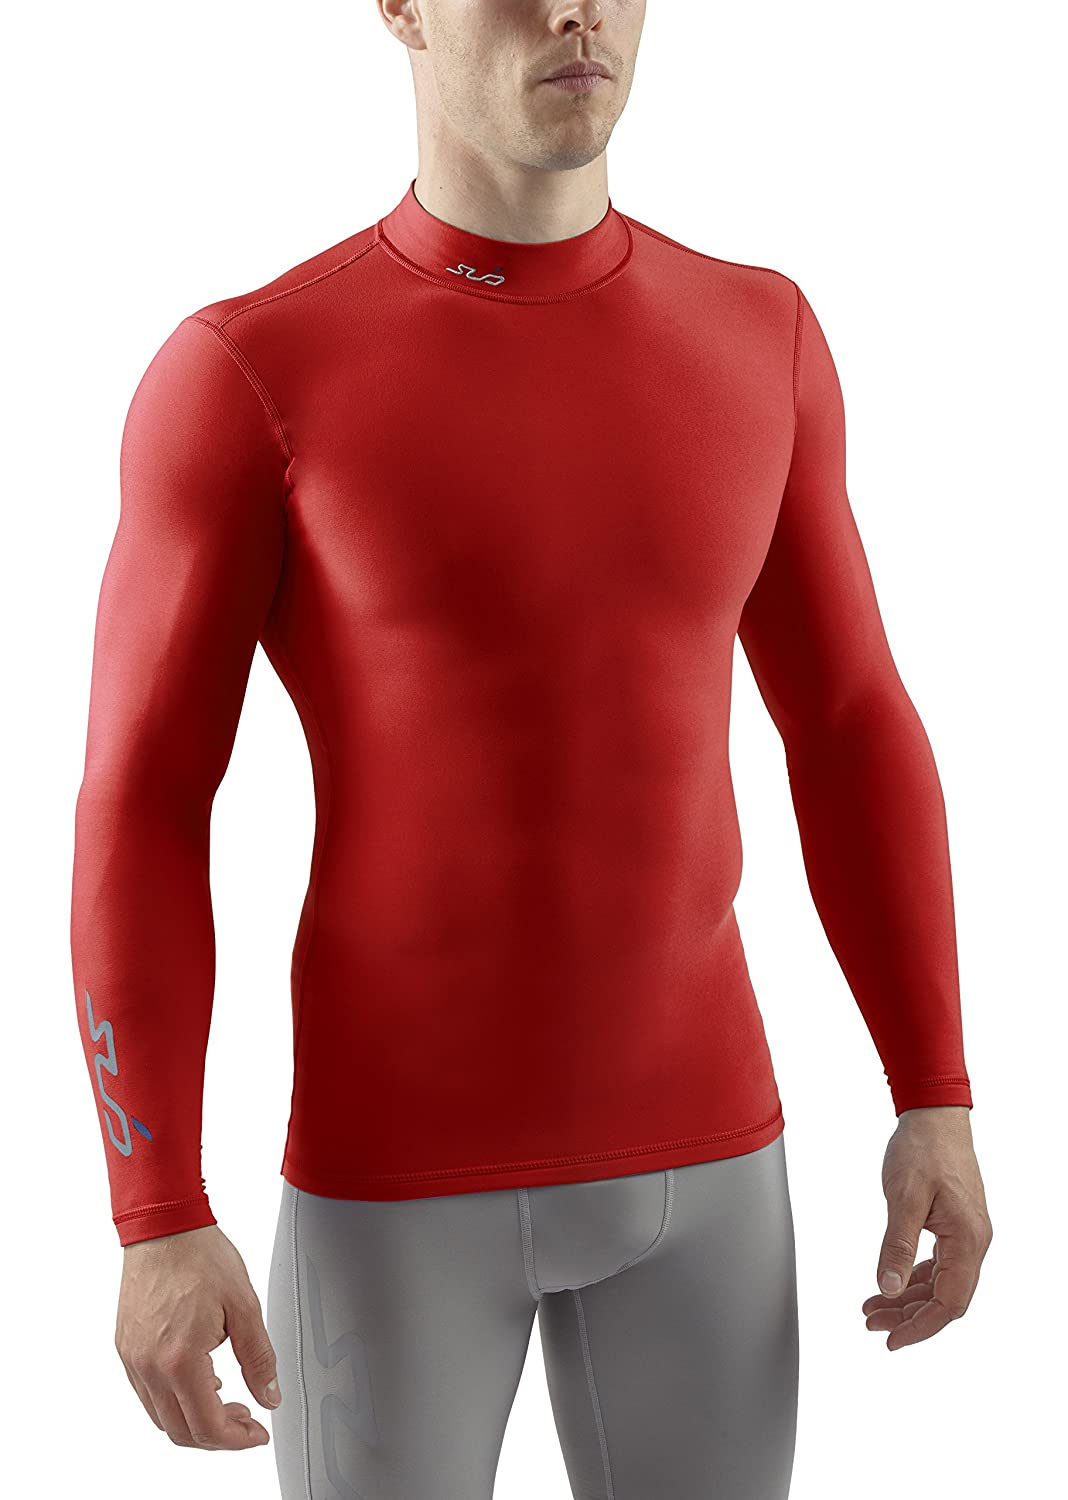 SUB Sports COLD Mens Compression Top - Mock Neck Long Sleeve Thermal Base Layer